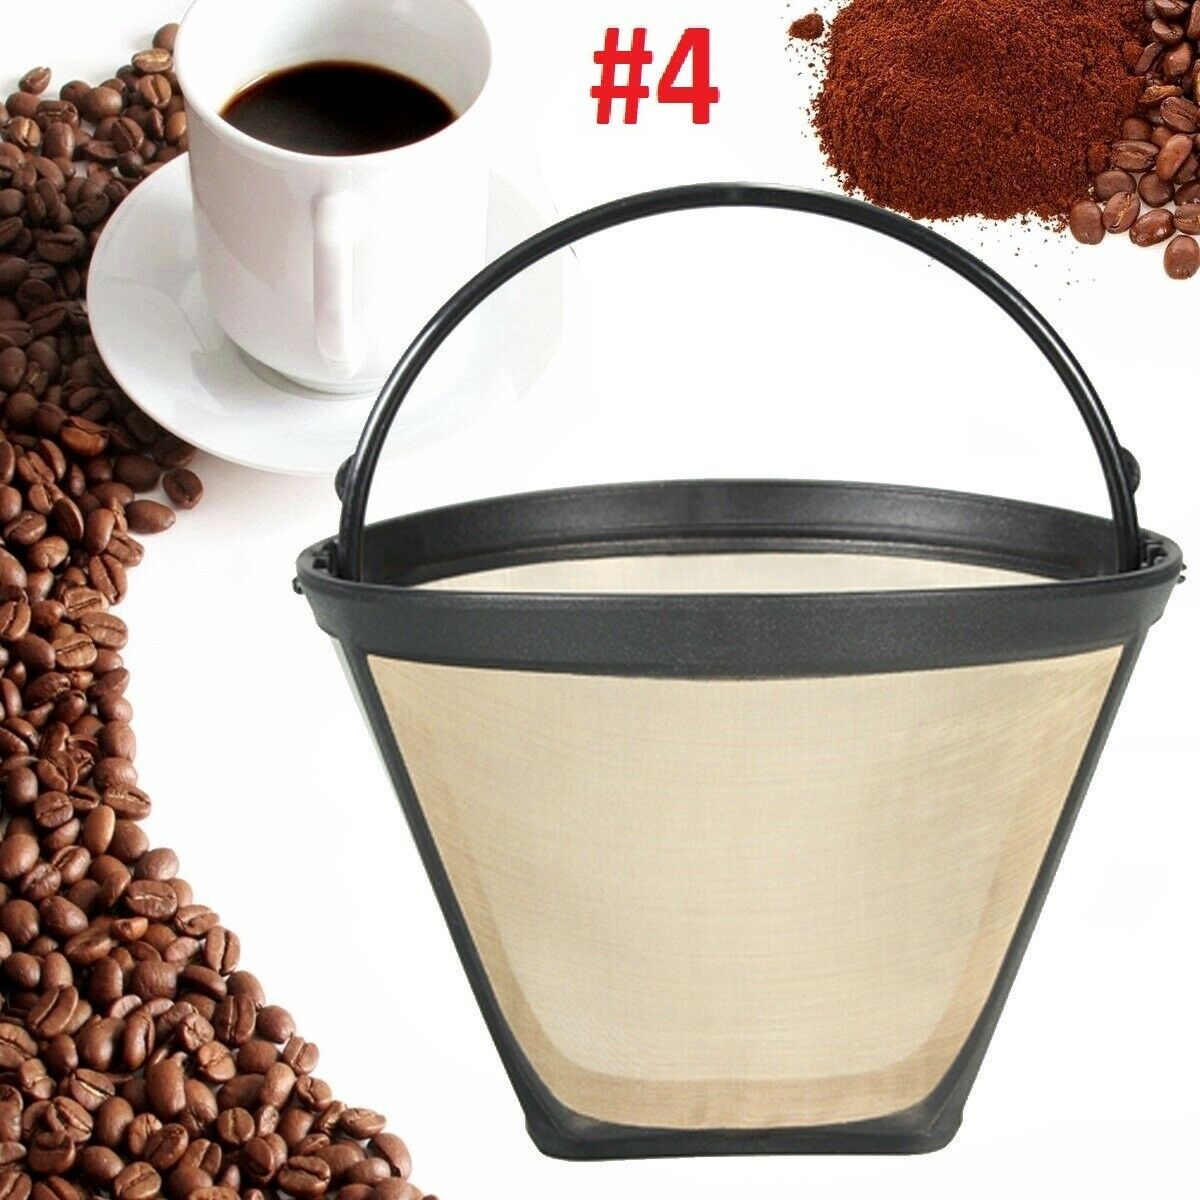 Reusable #4 Cone Coffee Filter for Cuisinart Makers Premium Filters Direct